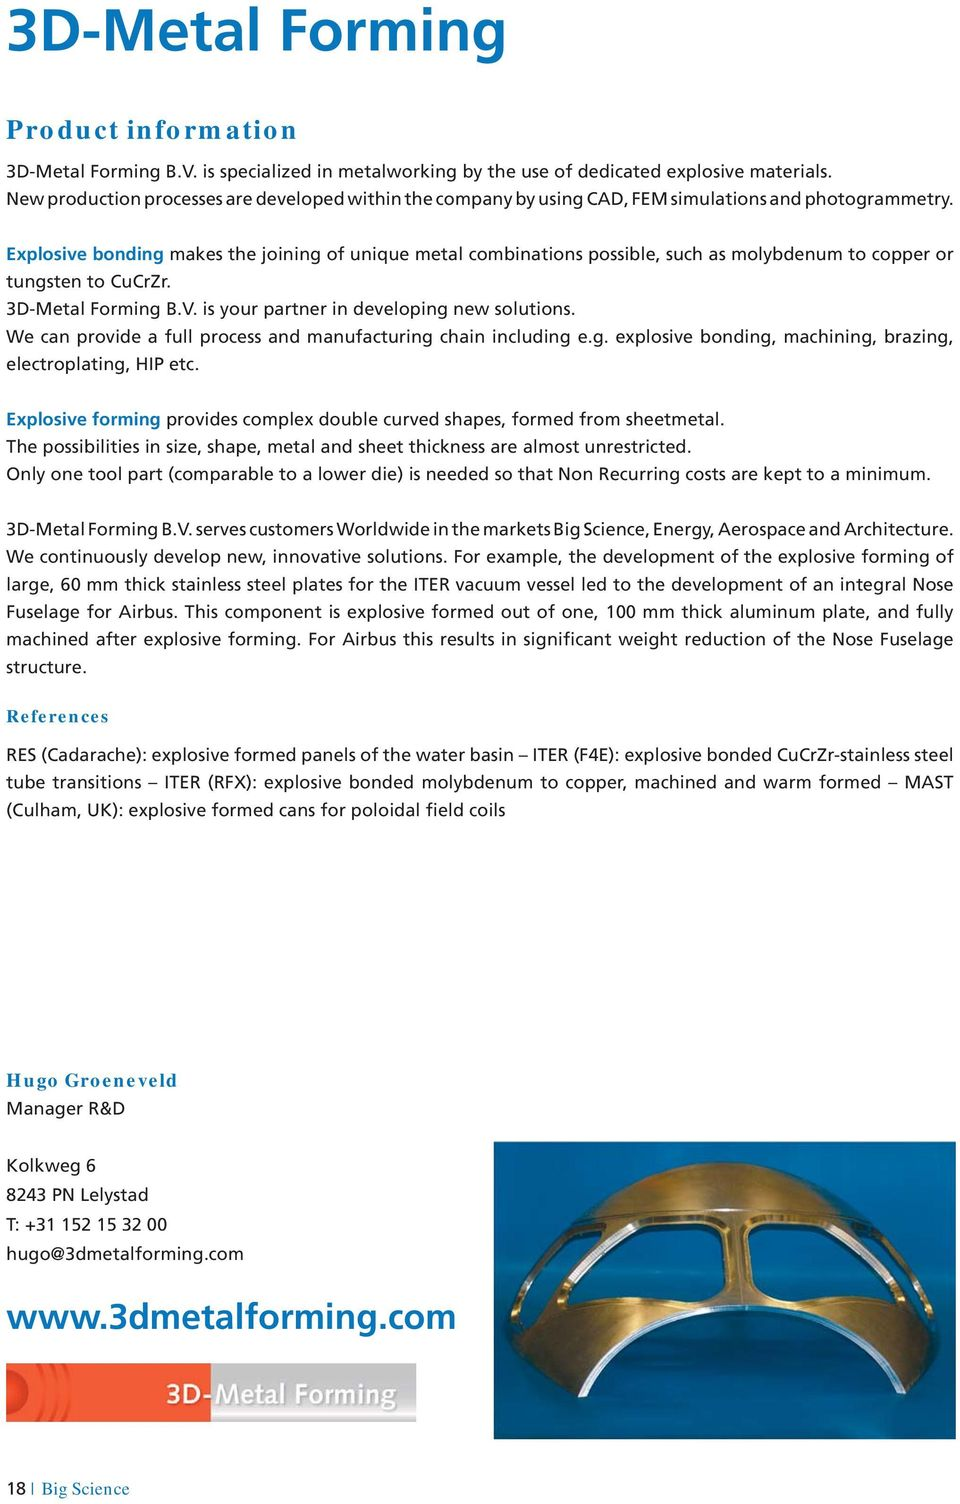 Explosive bonding makes the joining of unique metal combinations possible, such as molybdenum to copper or tungsten to CuCrZr. 3D-Metal Forming B.V. is your partner in developing new solutions.